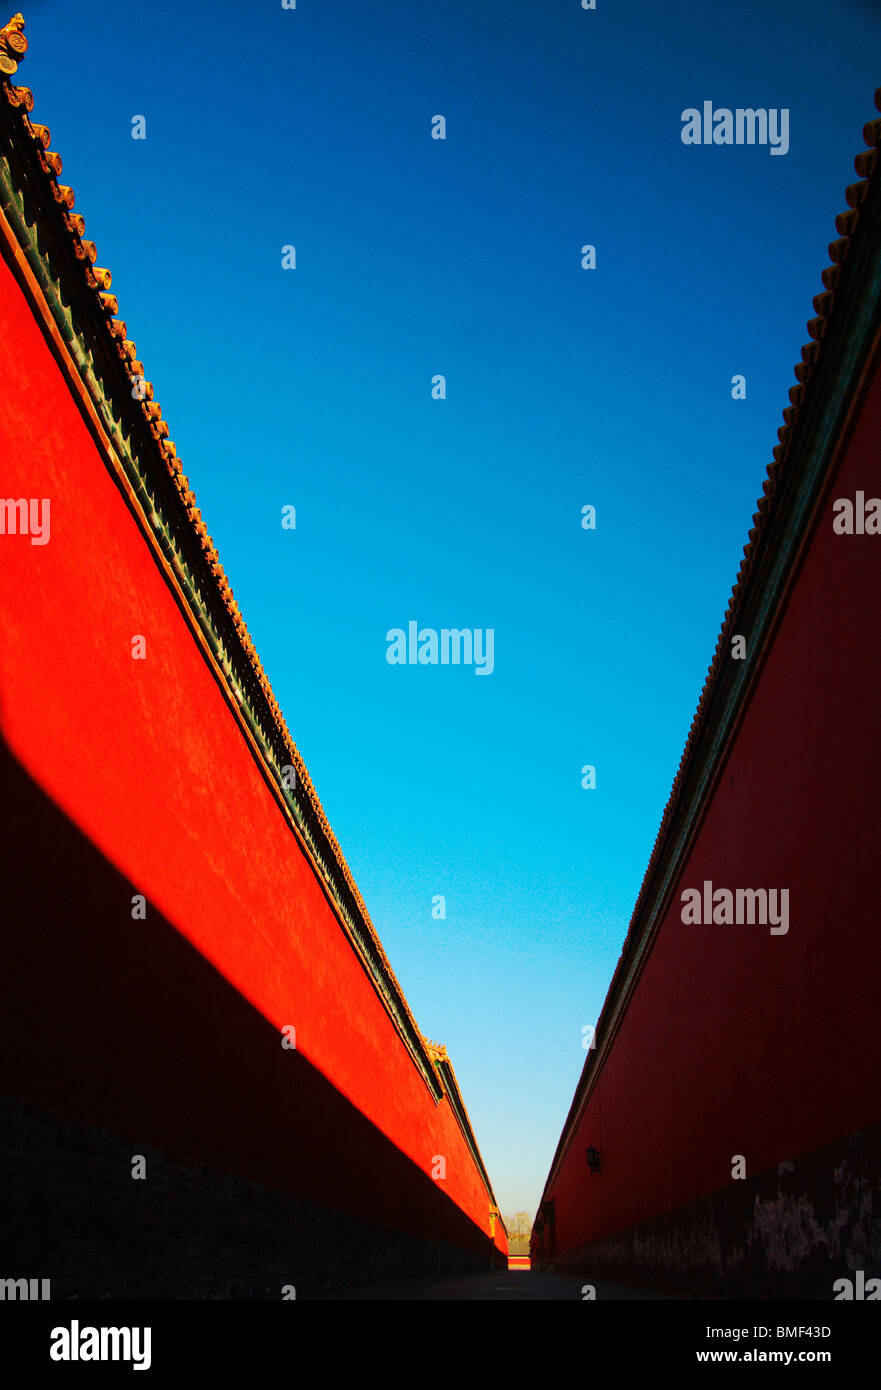 Red palace wall of Forbidden City, Beijing, China - Stock Image